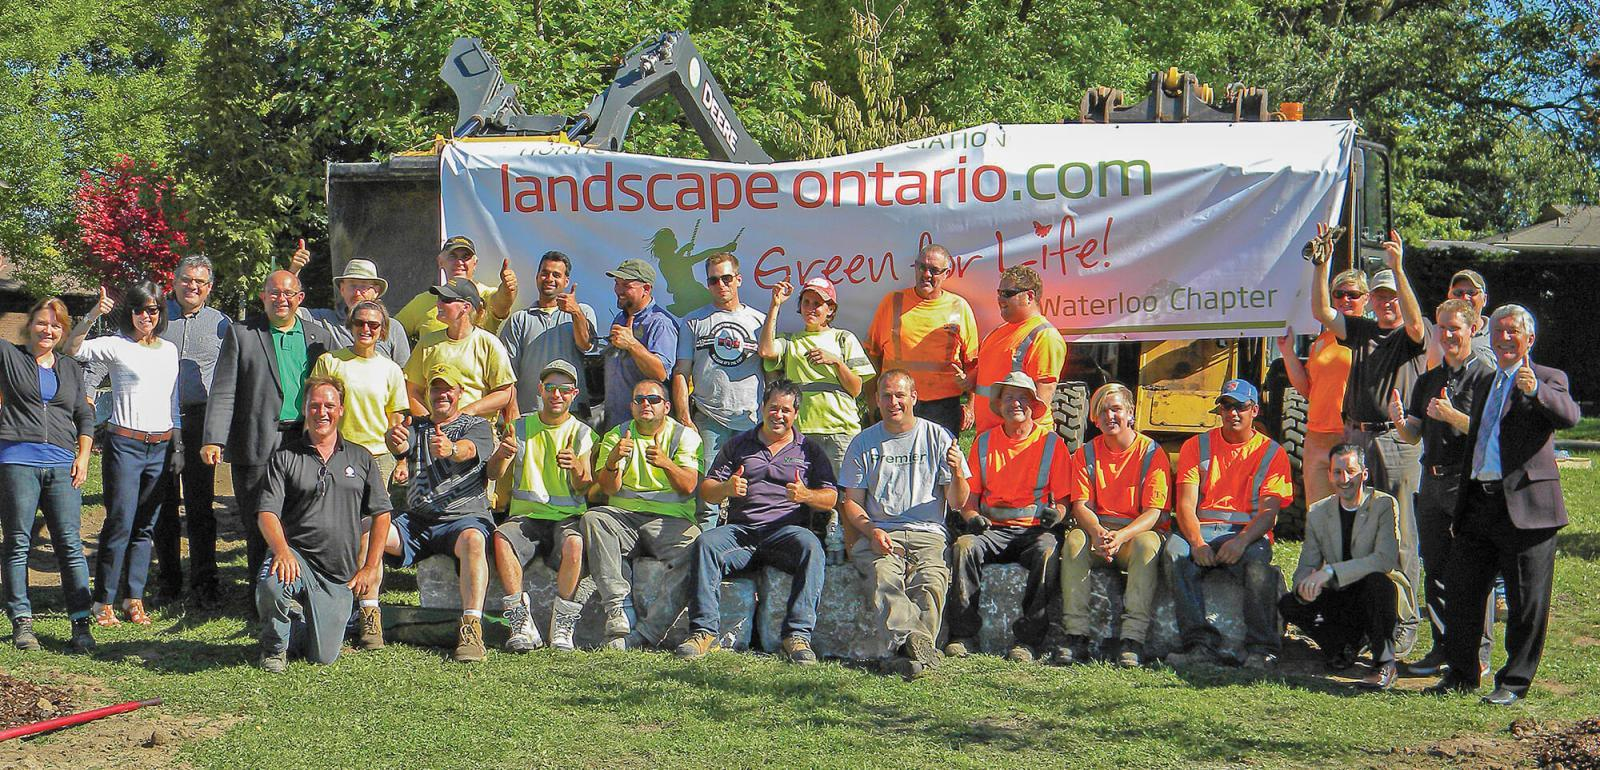 Over 45 Landscape Ontario volunteers helped to complete this year's school greening project in Waterloo Chapter.